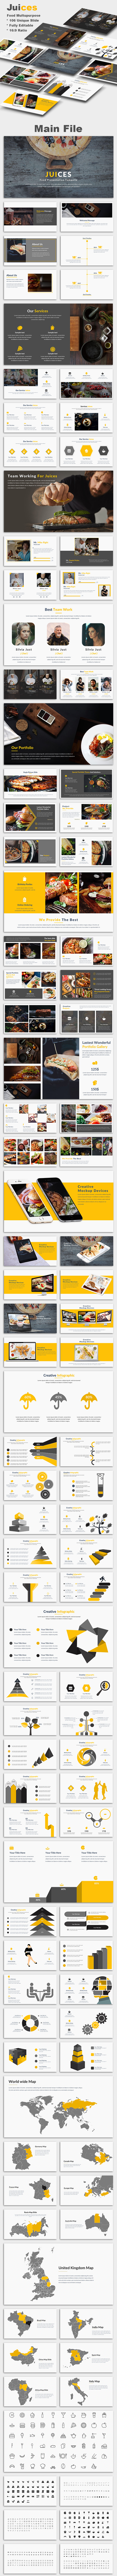 Juices Food Multipurpose PowerPoint Template - Creative PowerPoint Templates